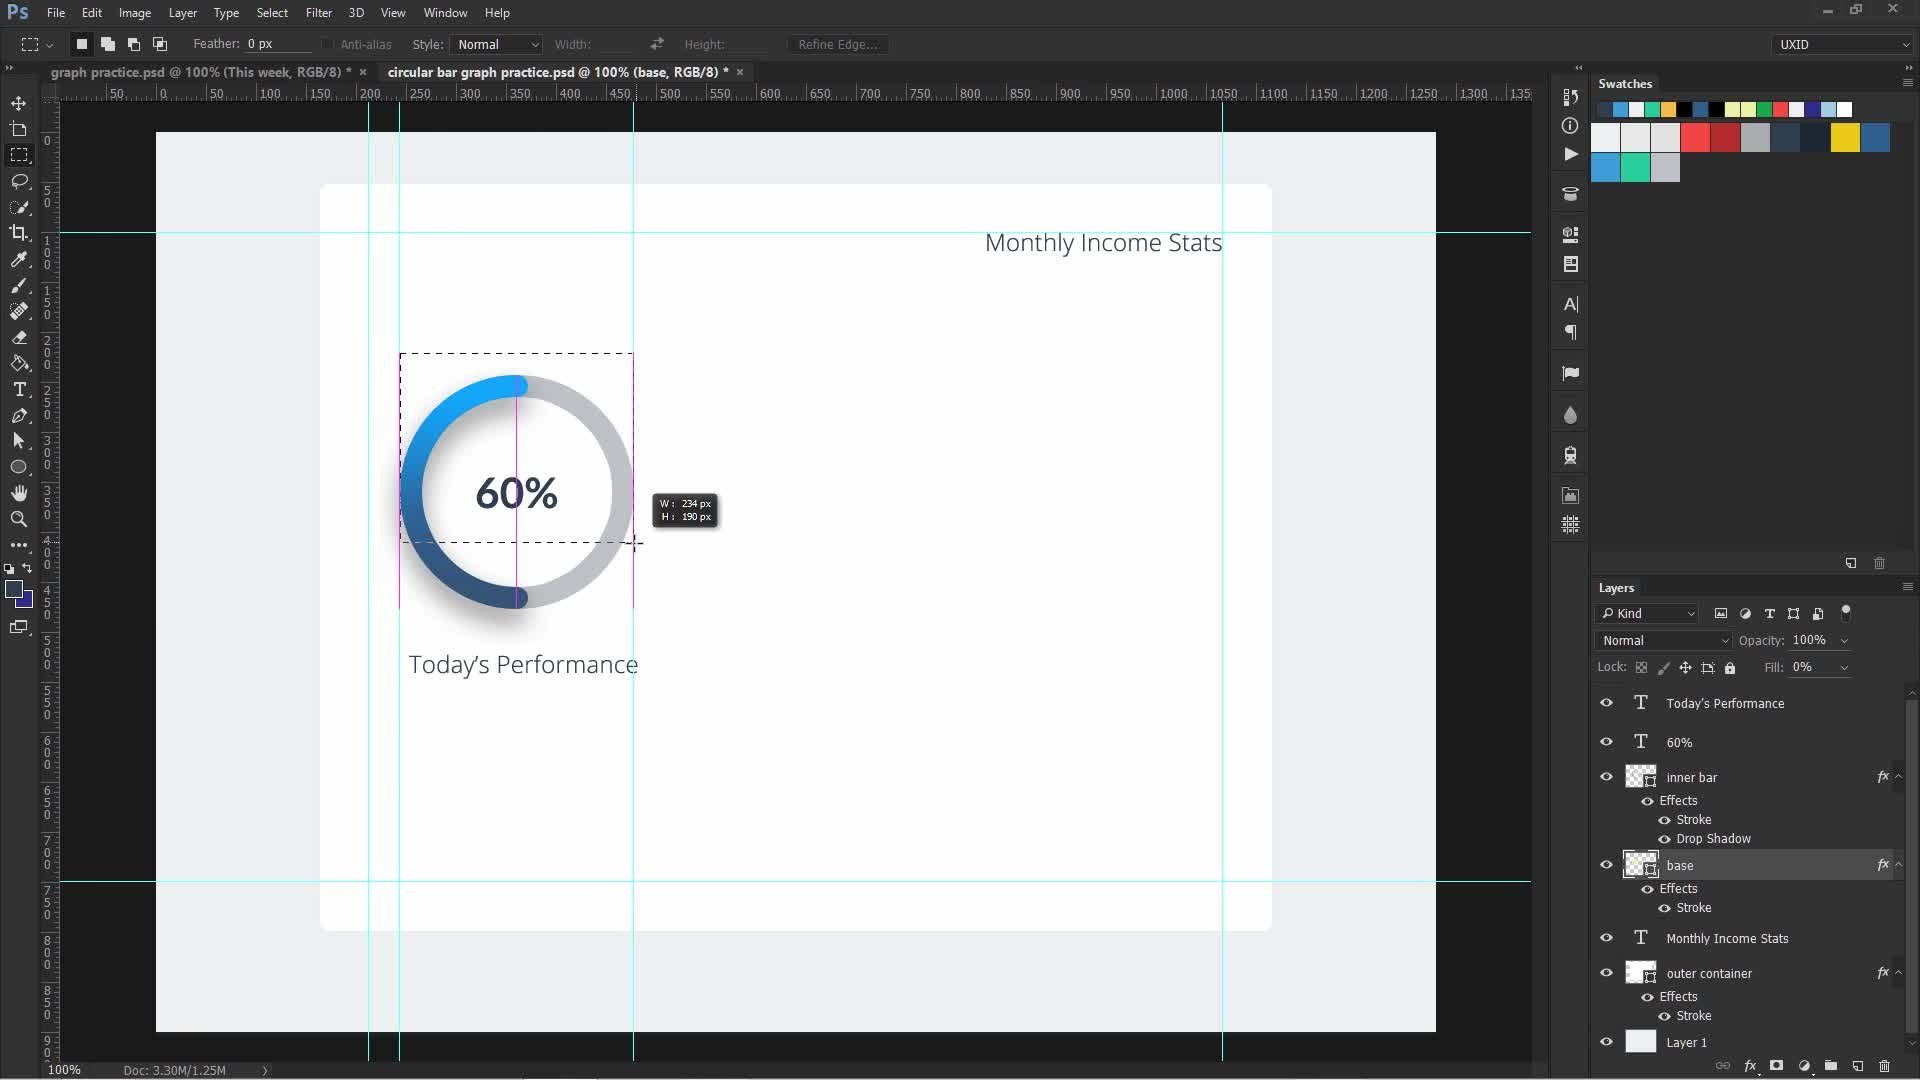 Design Dribbble like Circular and Bar graphs in Photoshop